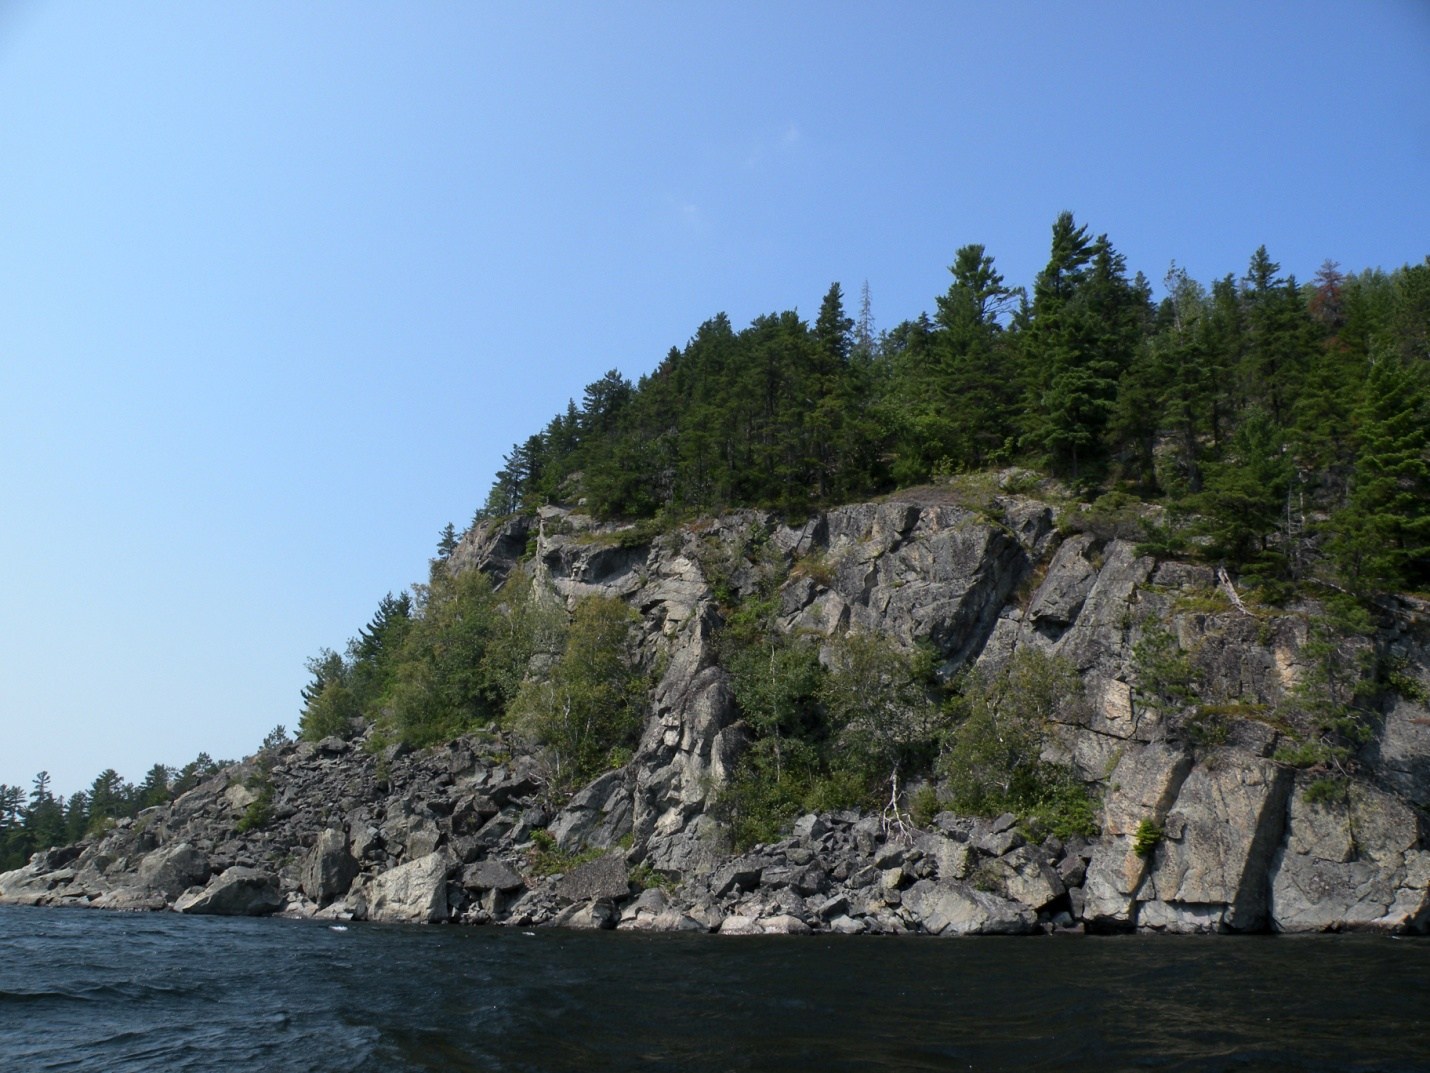 Picture of the Kaw-gaw-gee Waw-bee-kōng cliff on Obabika Lake in Ontario, Canada